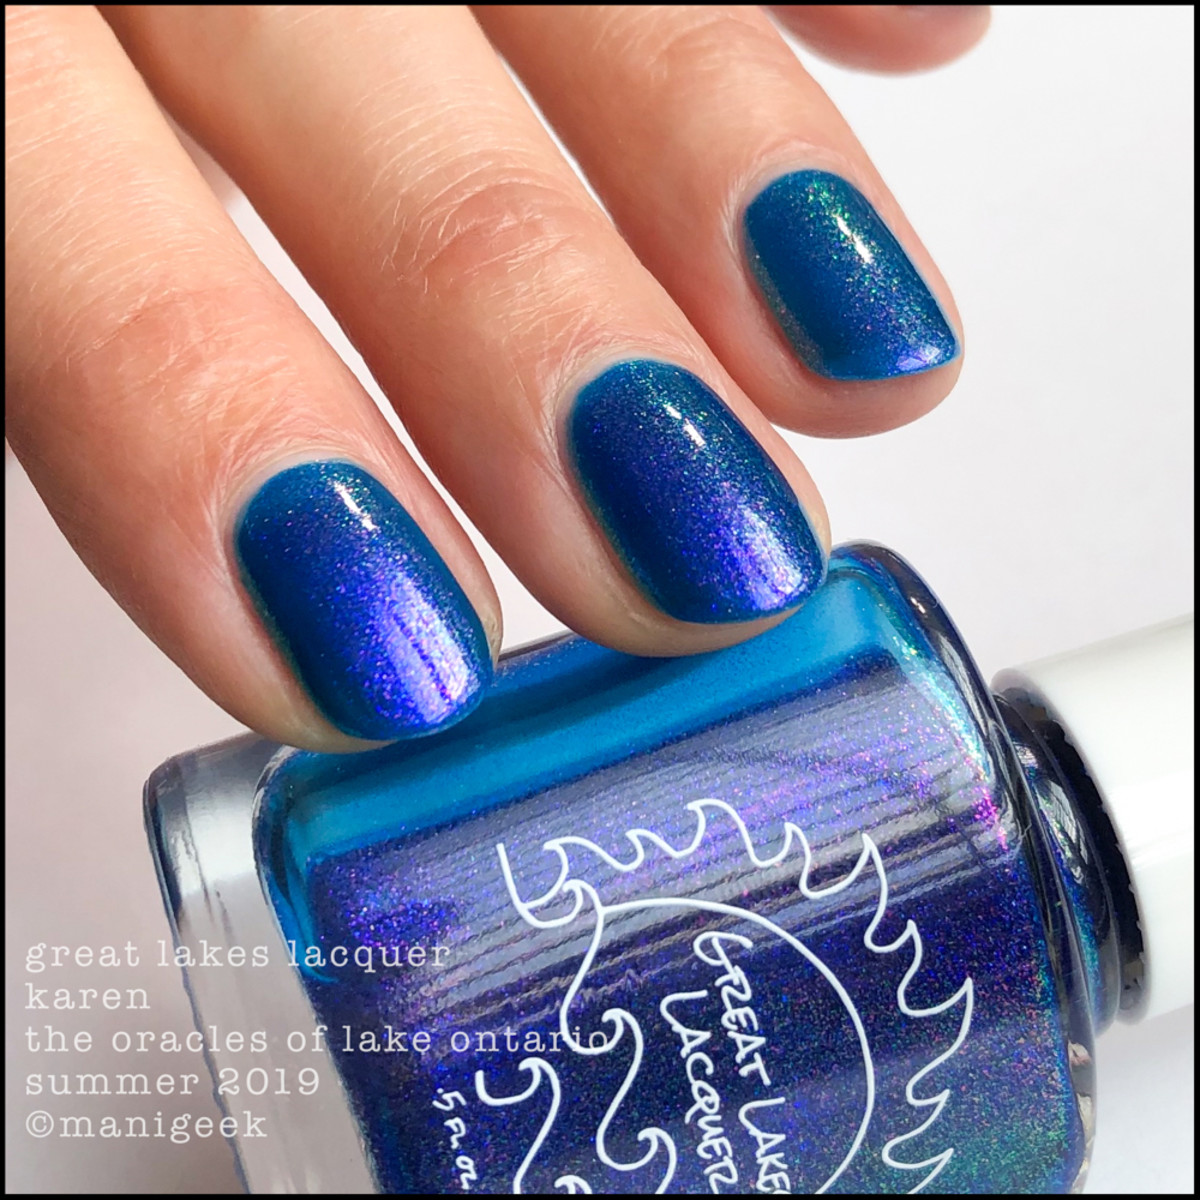 Great Lakes Lacquer Oracles of Lake Ontario Karen - LE IEC 2019 2